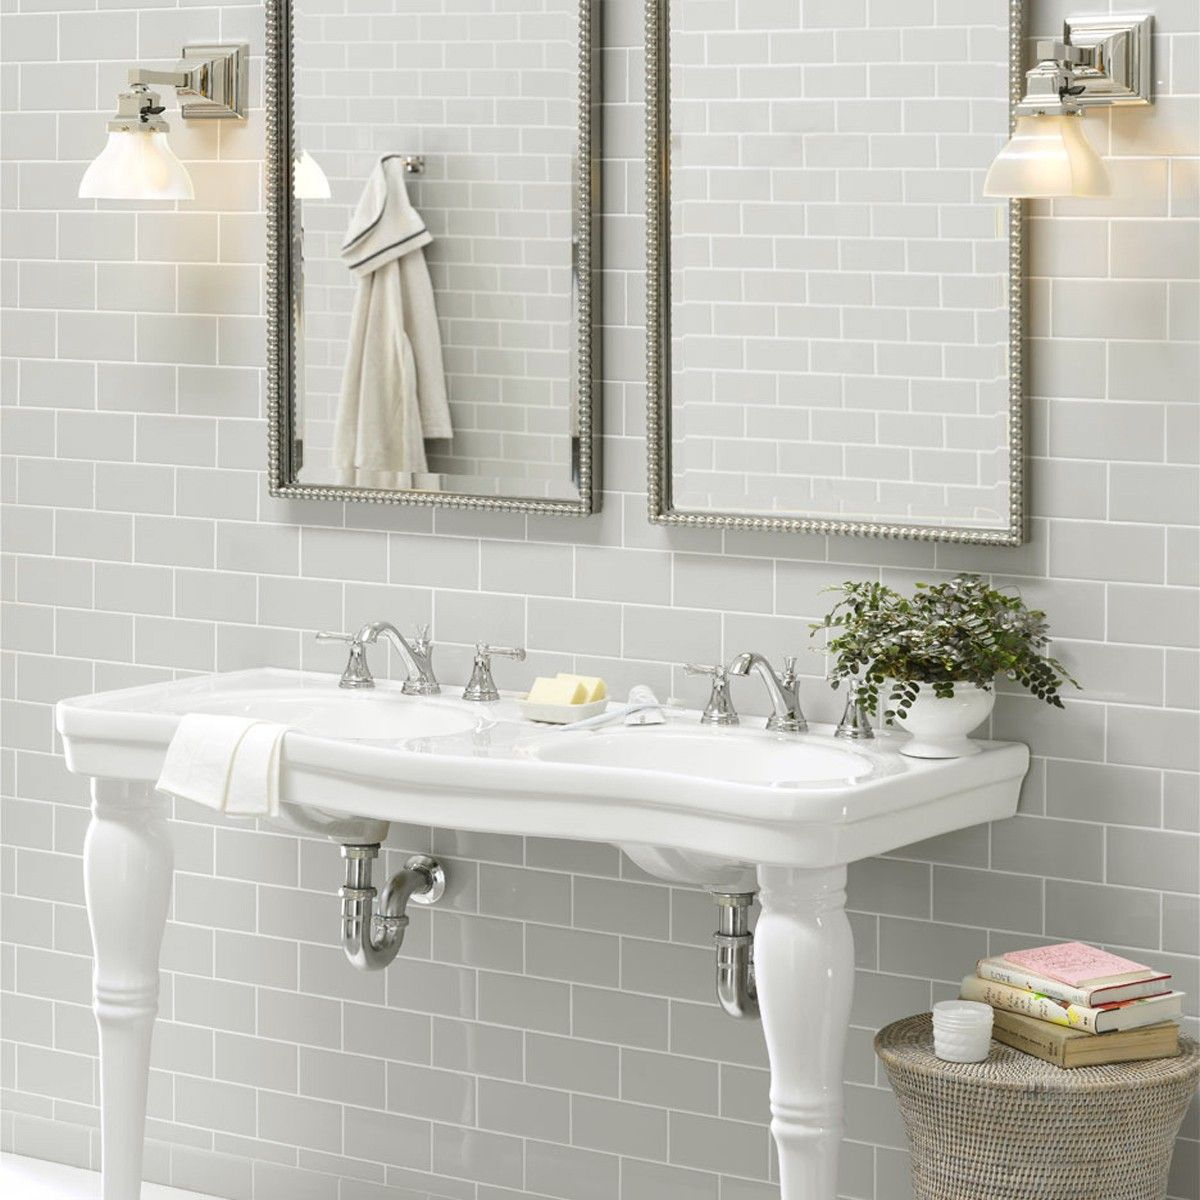 27 Unique Cream And Grey Bathroom Tiles | eyagci.com